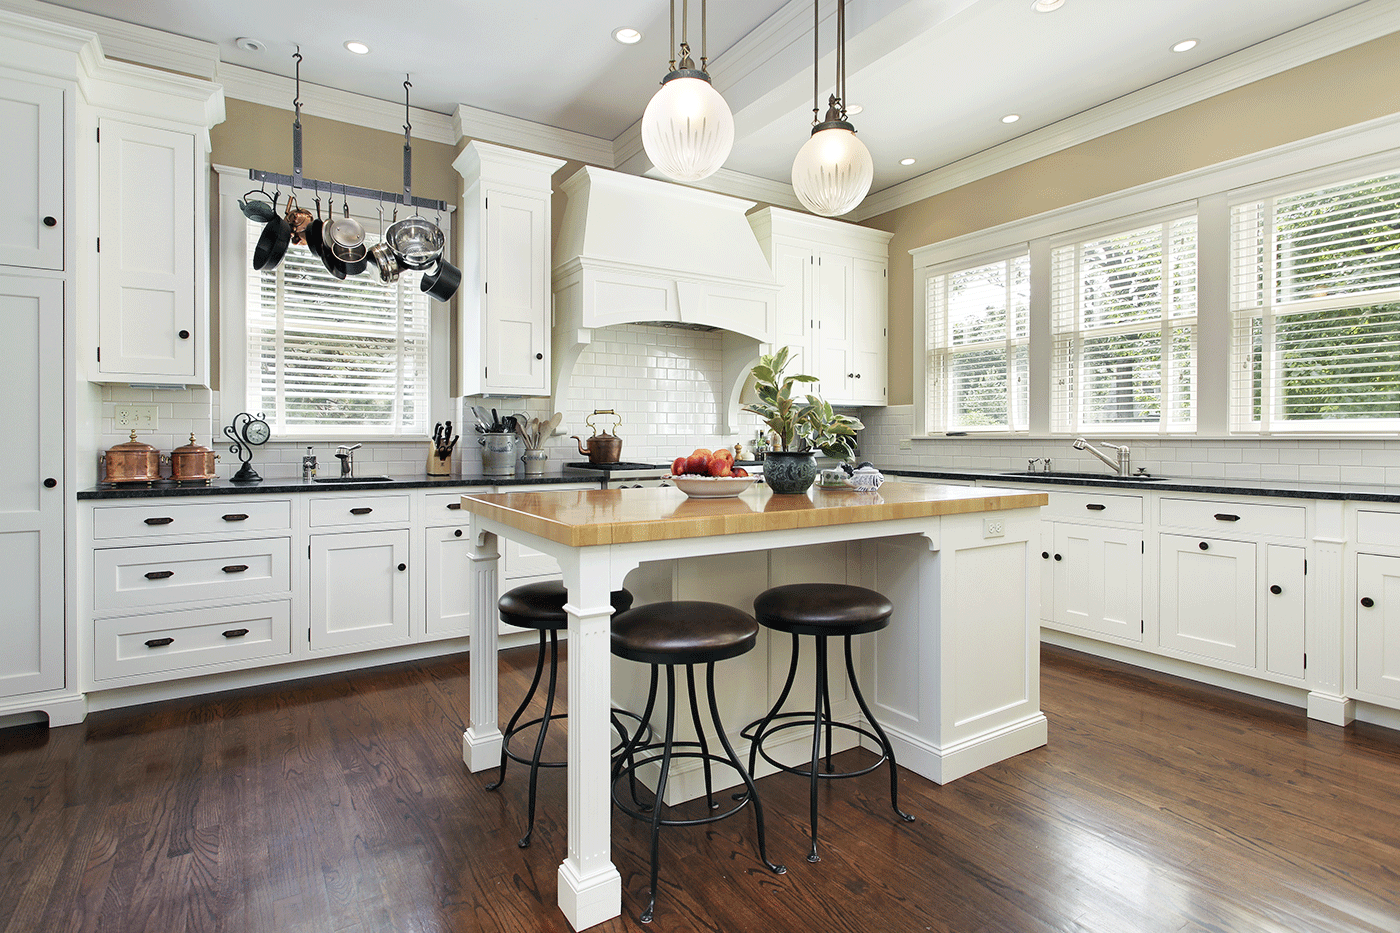 Tips to Reinvent Your Kitchen on a Budget - bhgrelife.com